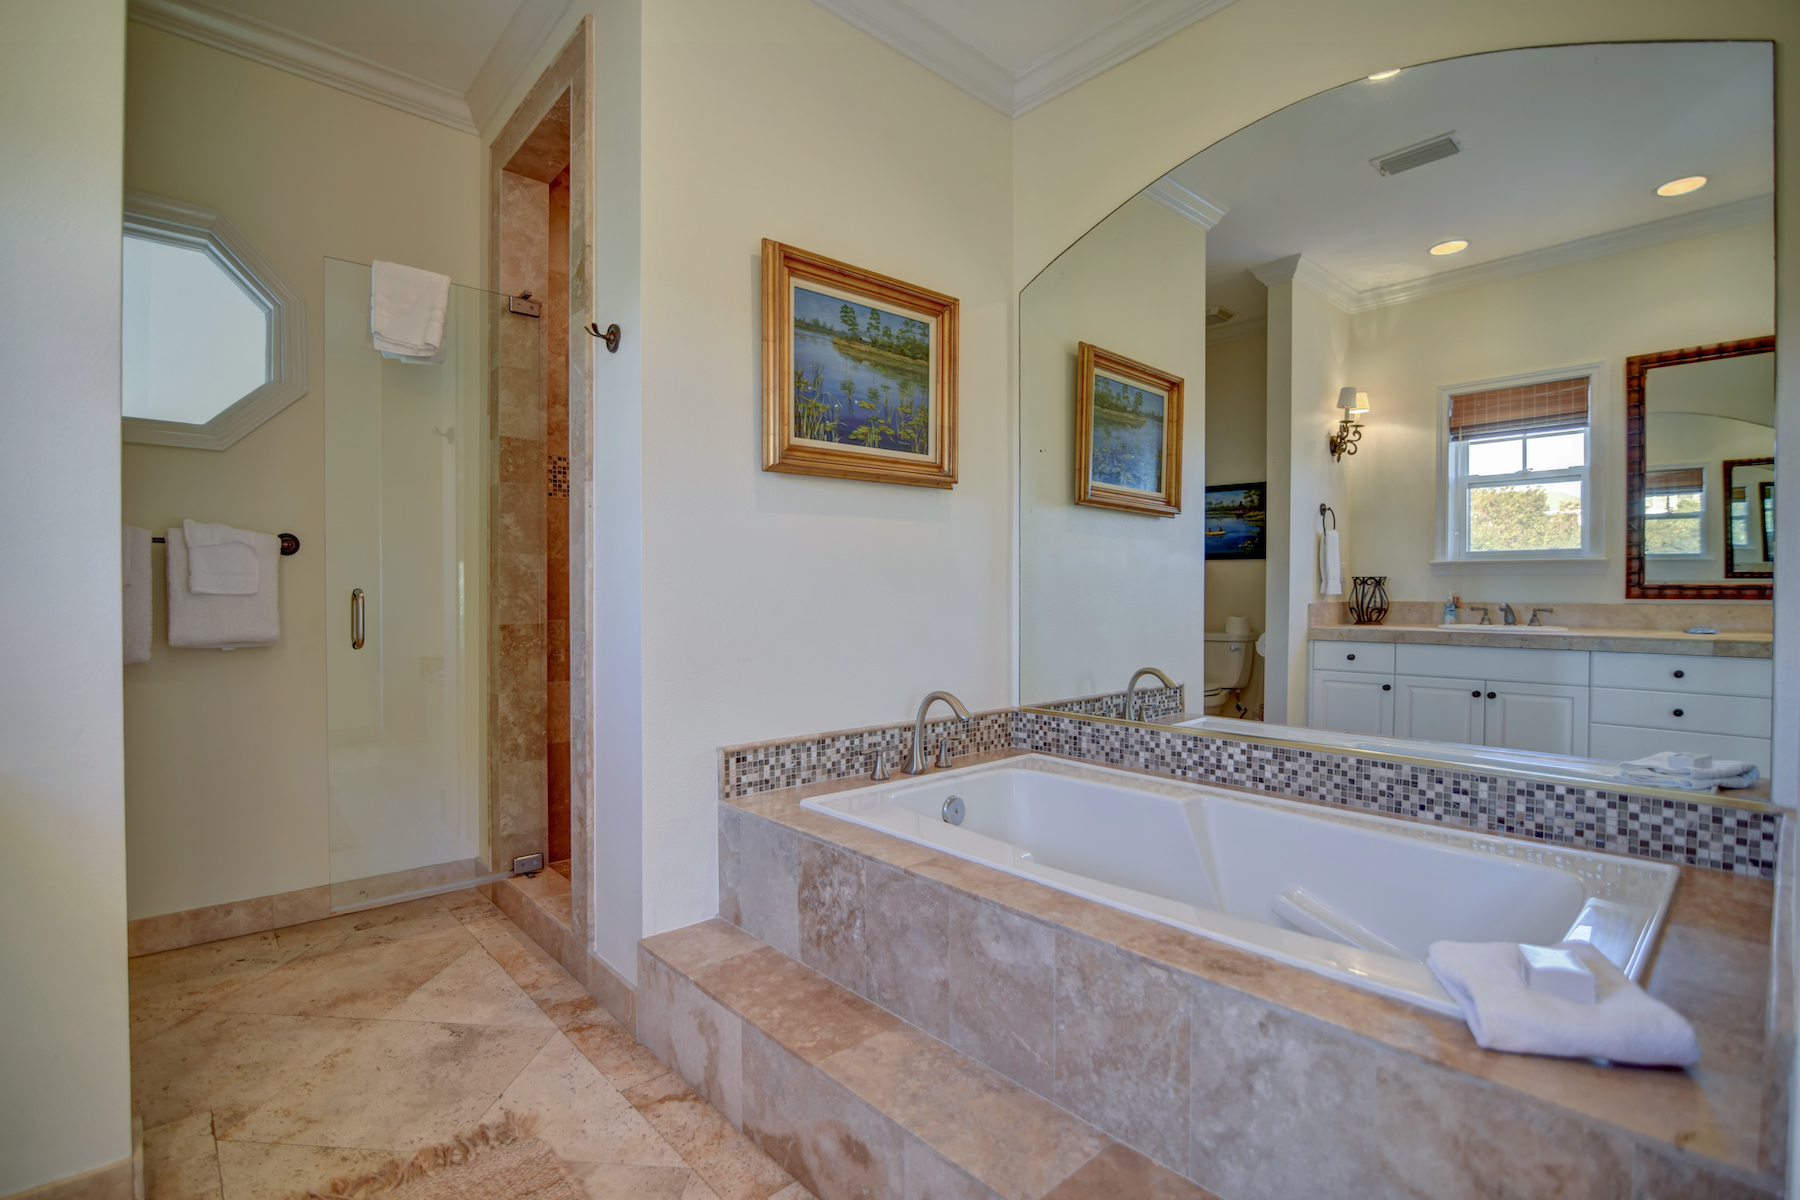 Downstairs Tub